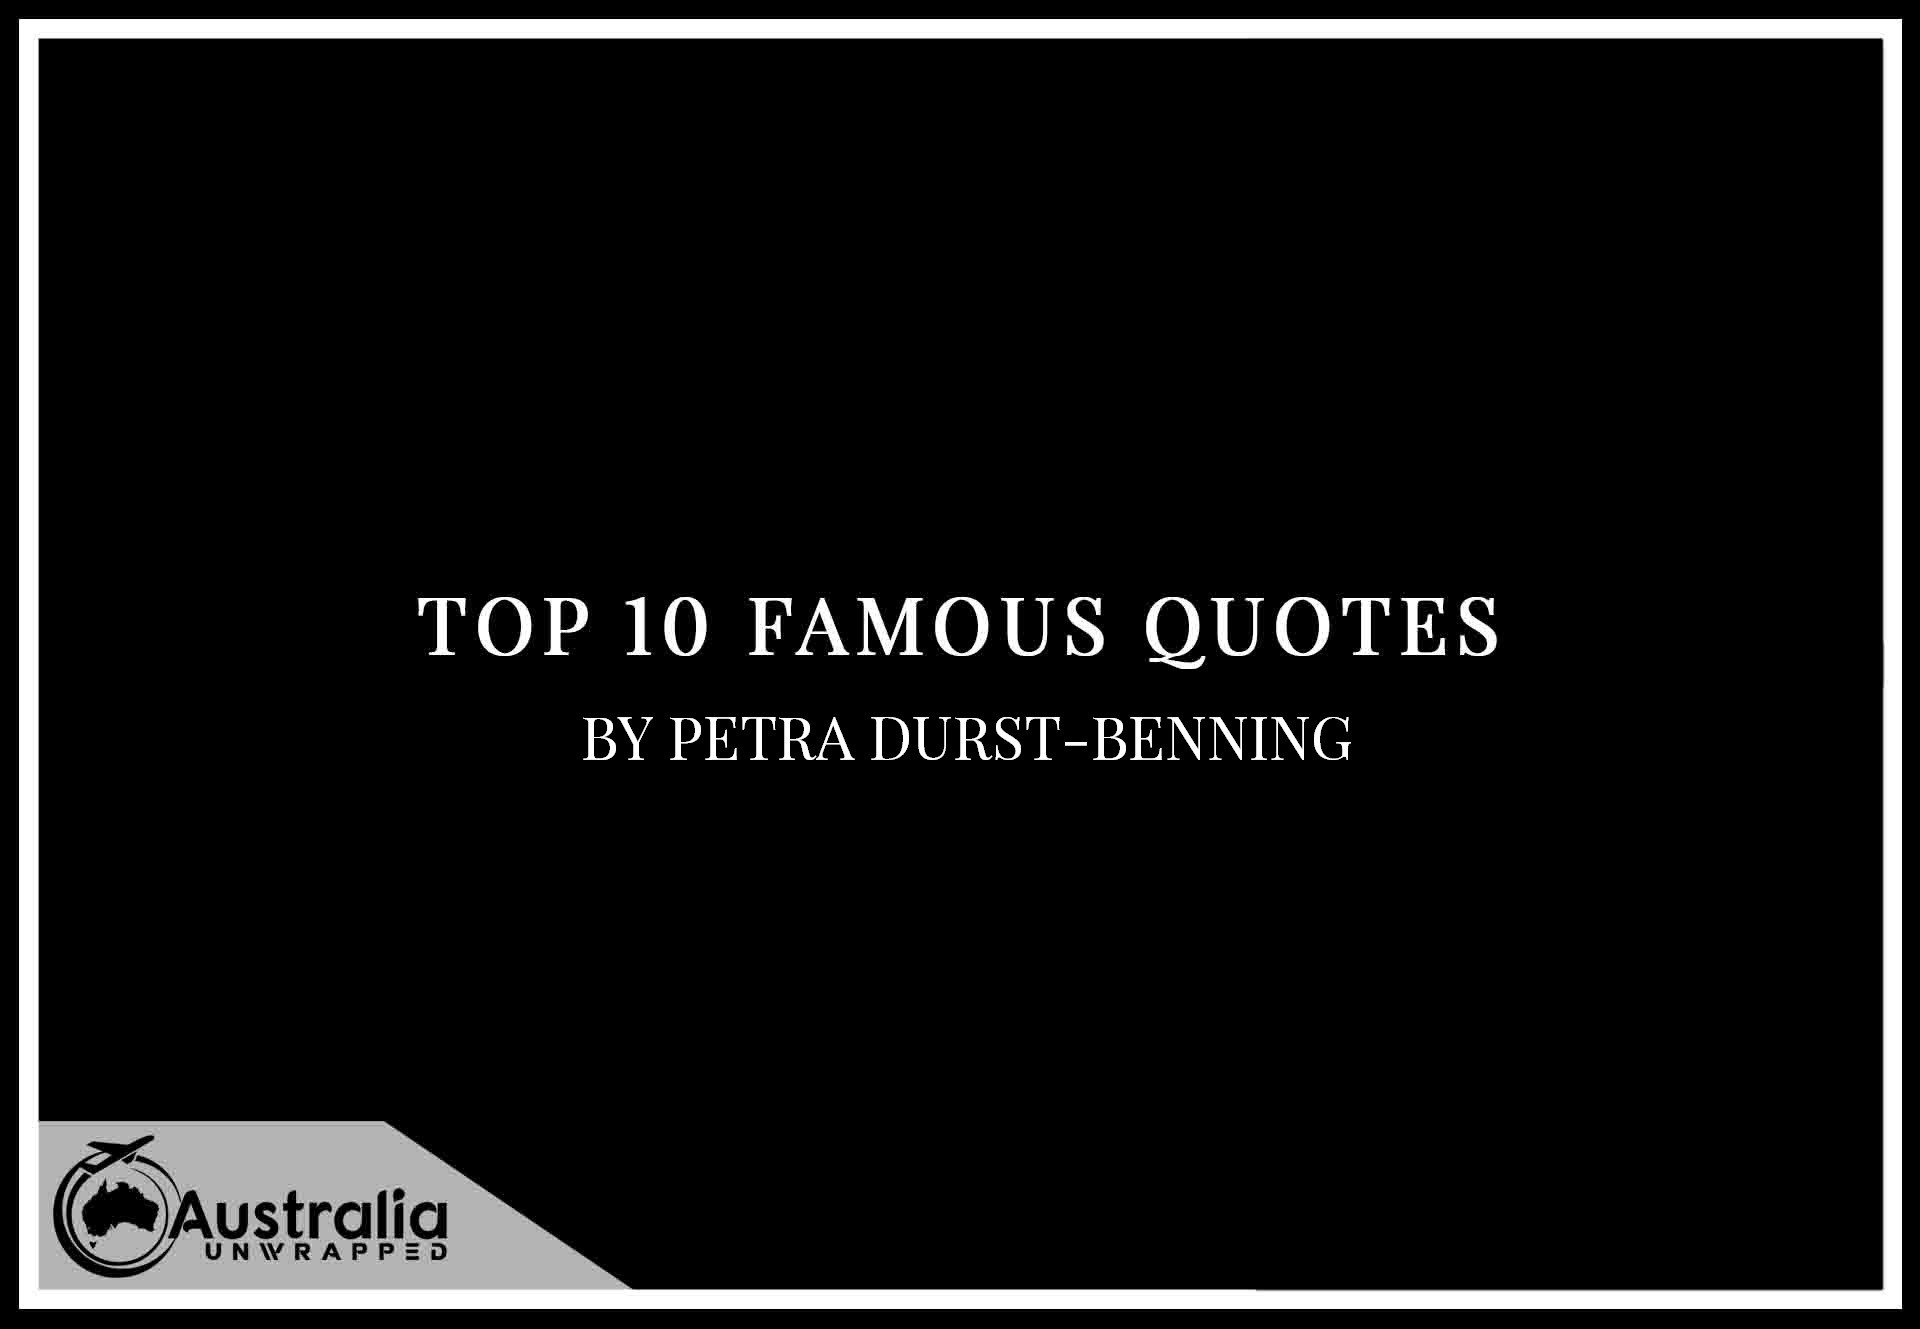 Top 10 Famous Quotes by Author Petra Durst-Benning